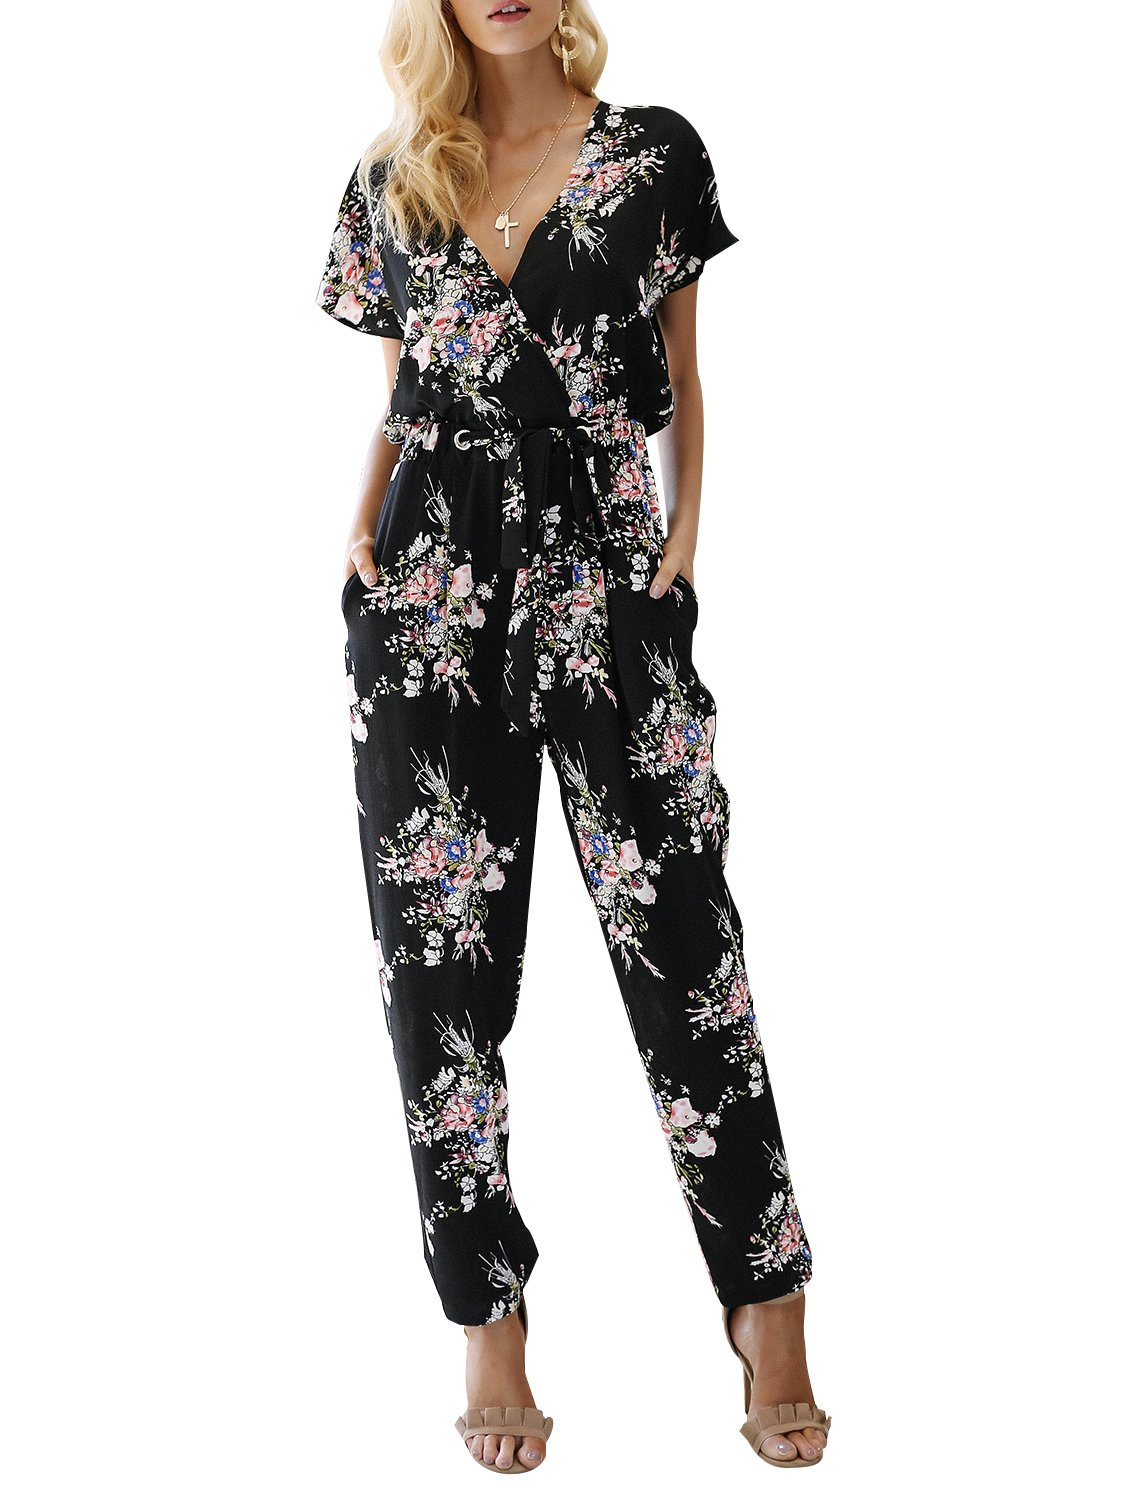 Missy Chilli Women's Floral Print Short Sleeve V Neck Wrap Jumpsuit with Tie Waist Black US 8/10